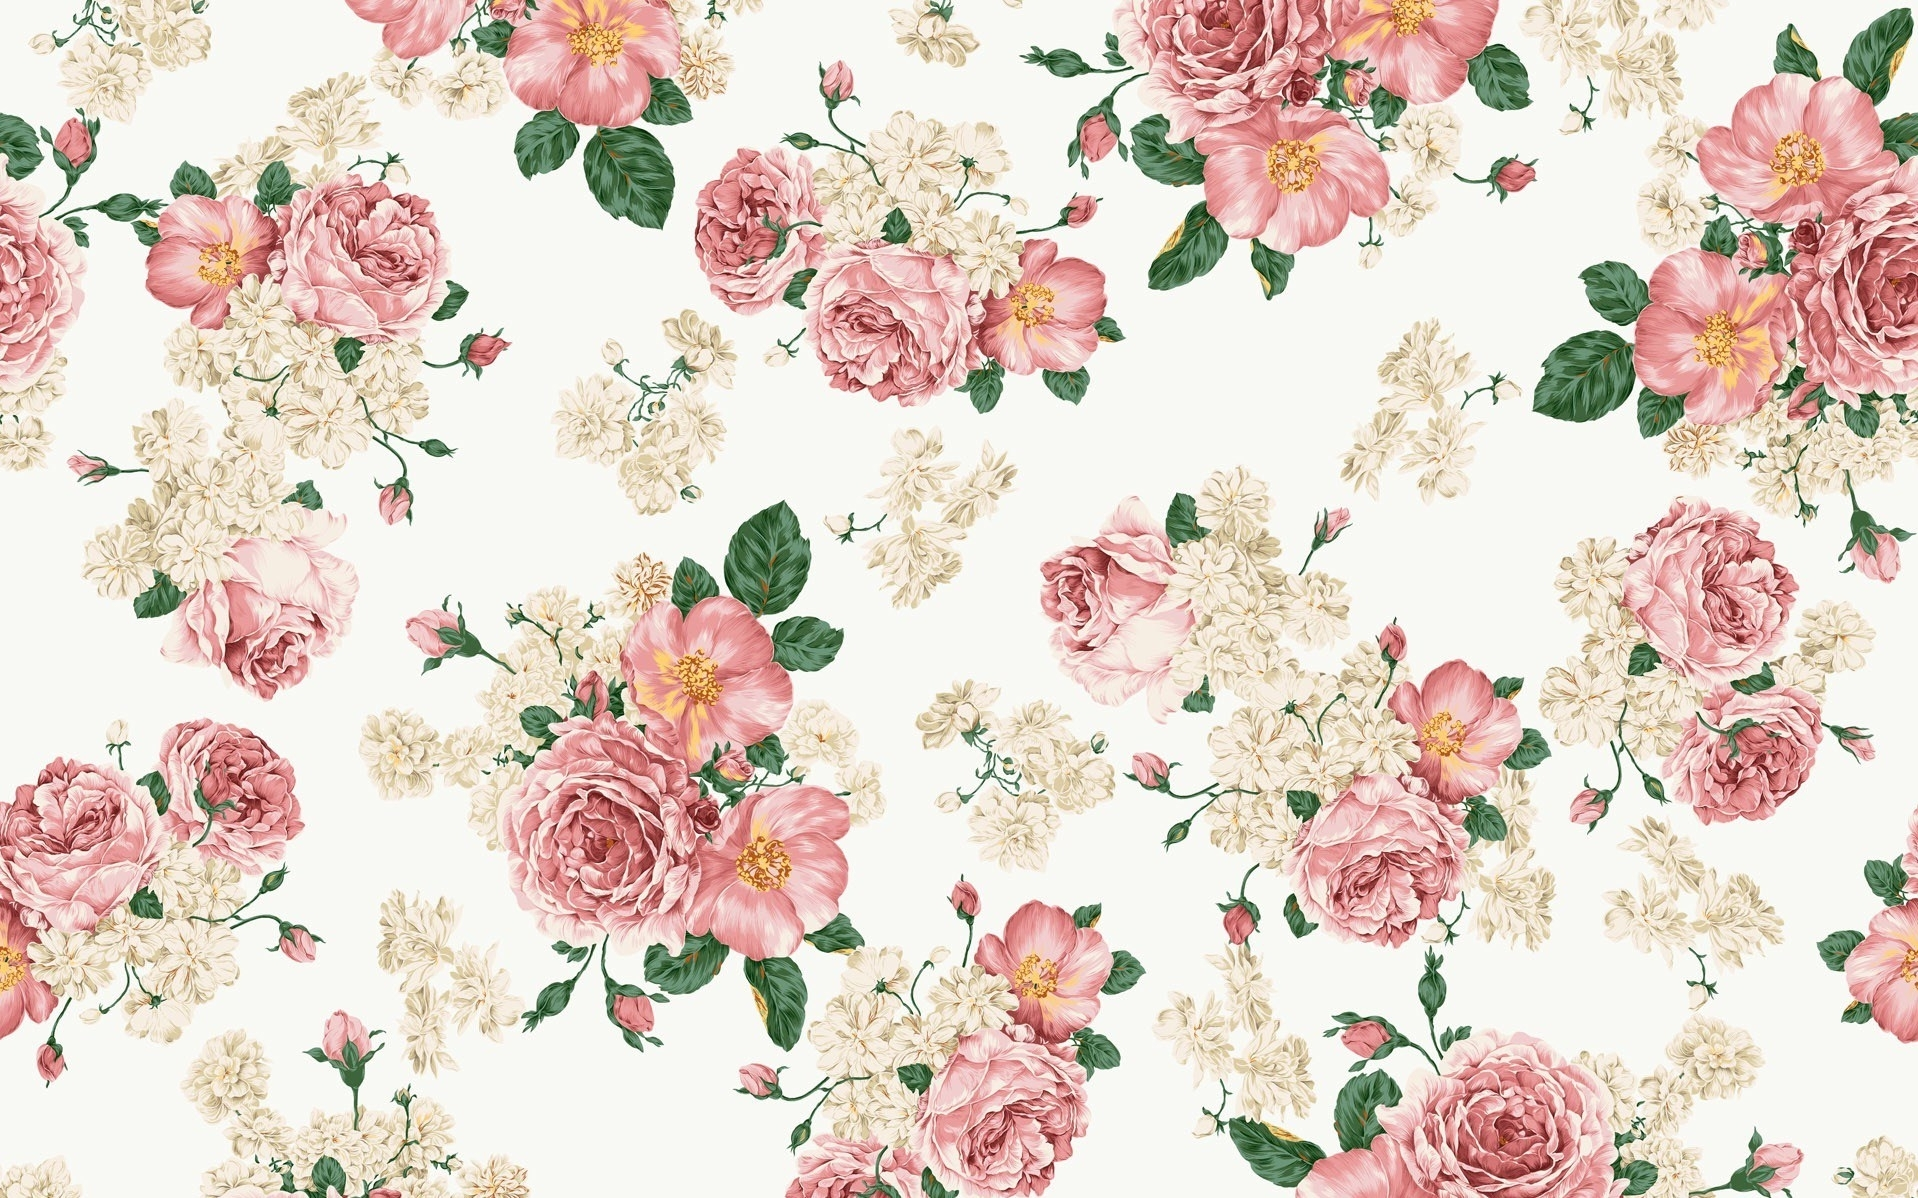 free desktop wallpaper downloads vintage flower, 1349 kb - duarte